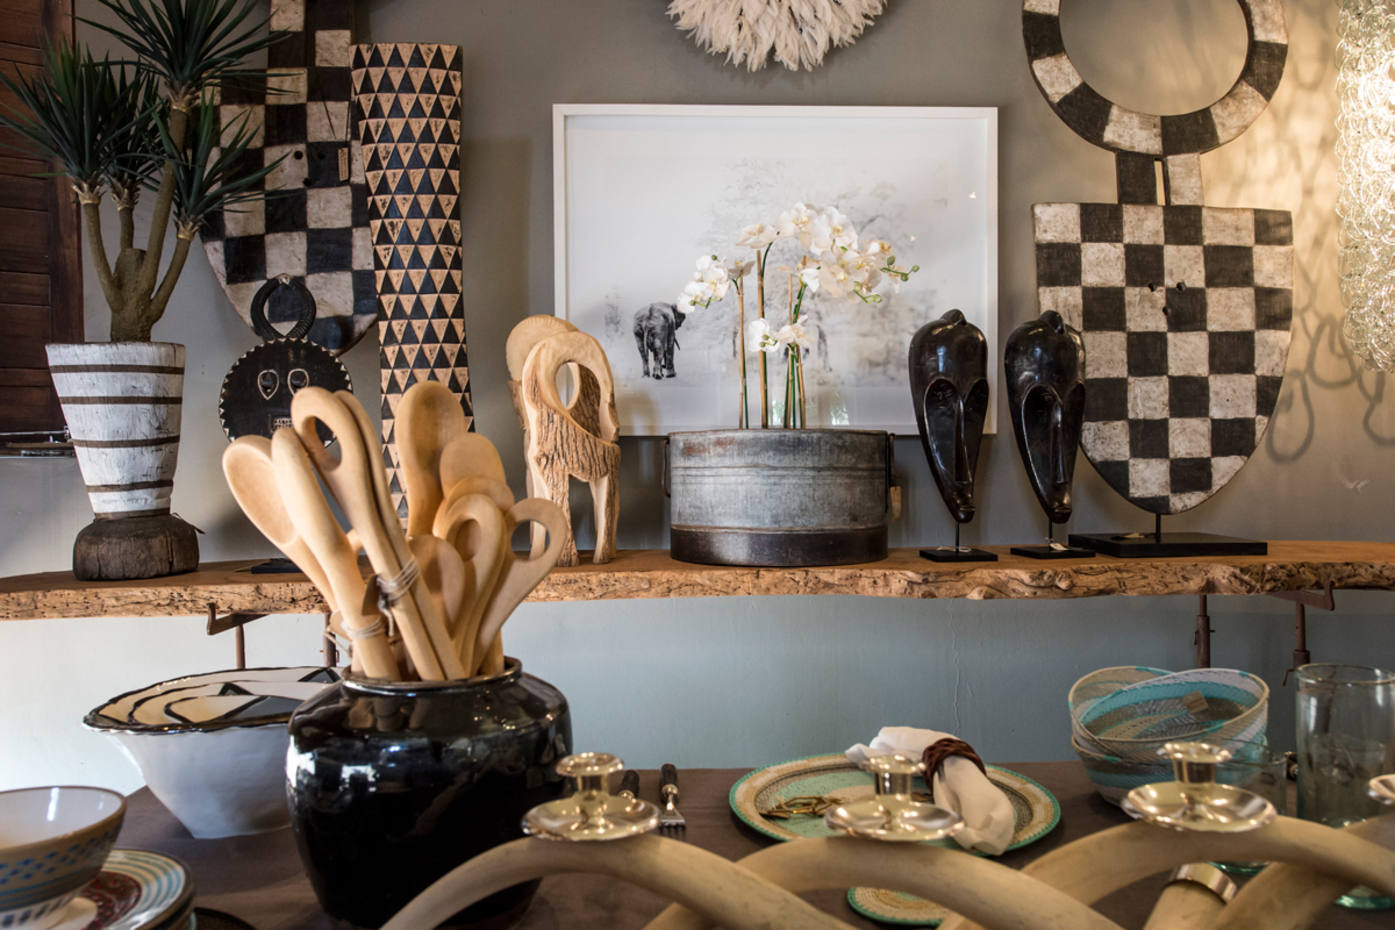 The Singita Boutique & Gallery website showcases the exquisite design products also sold at the safari brand's properties